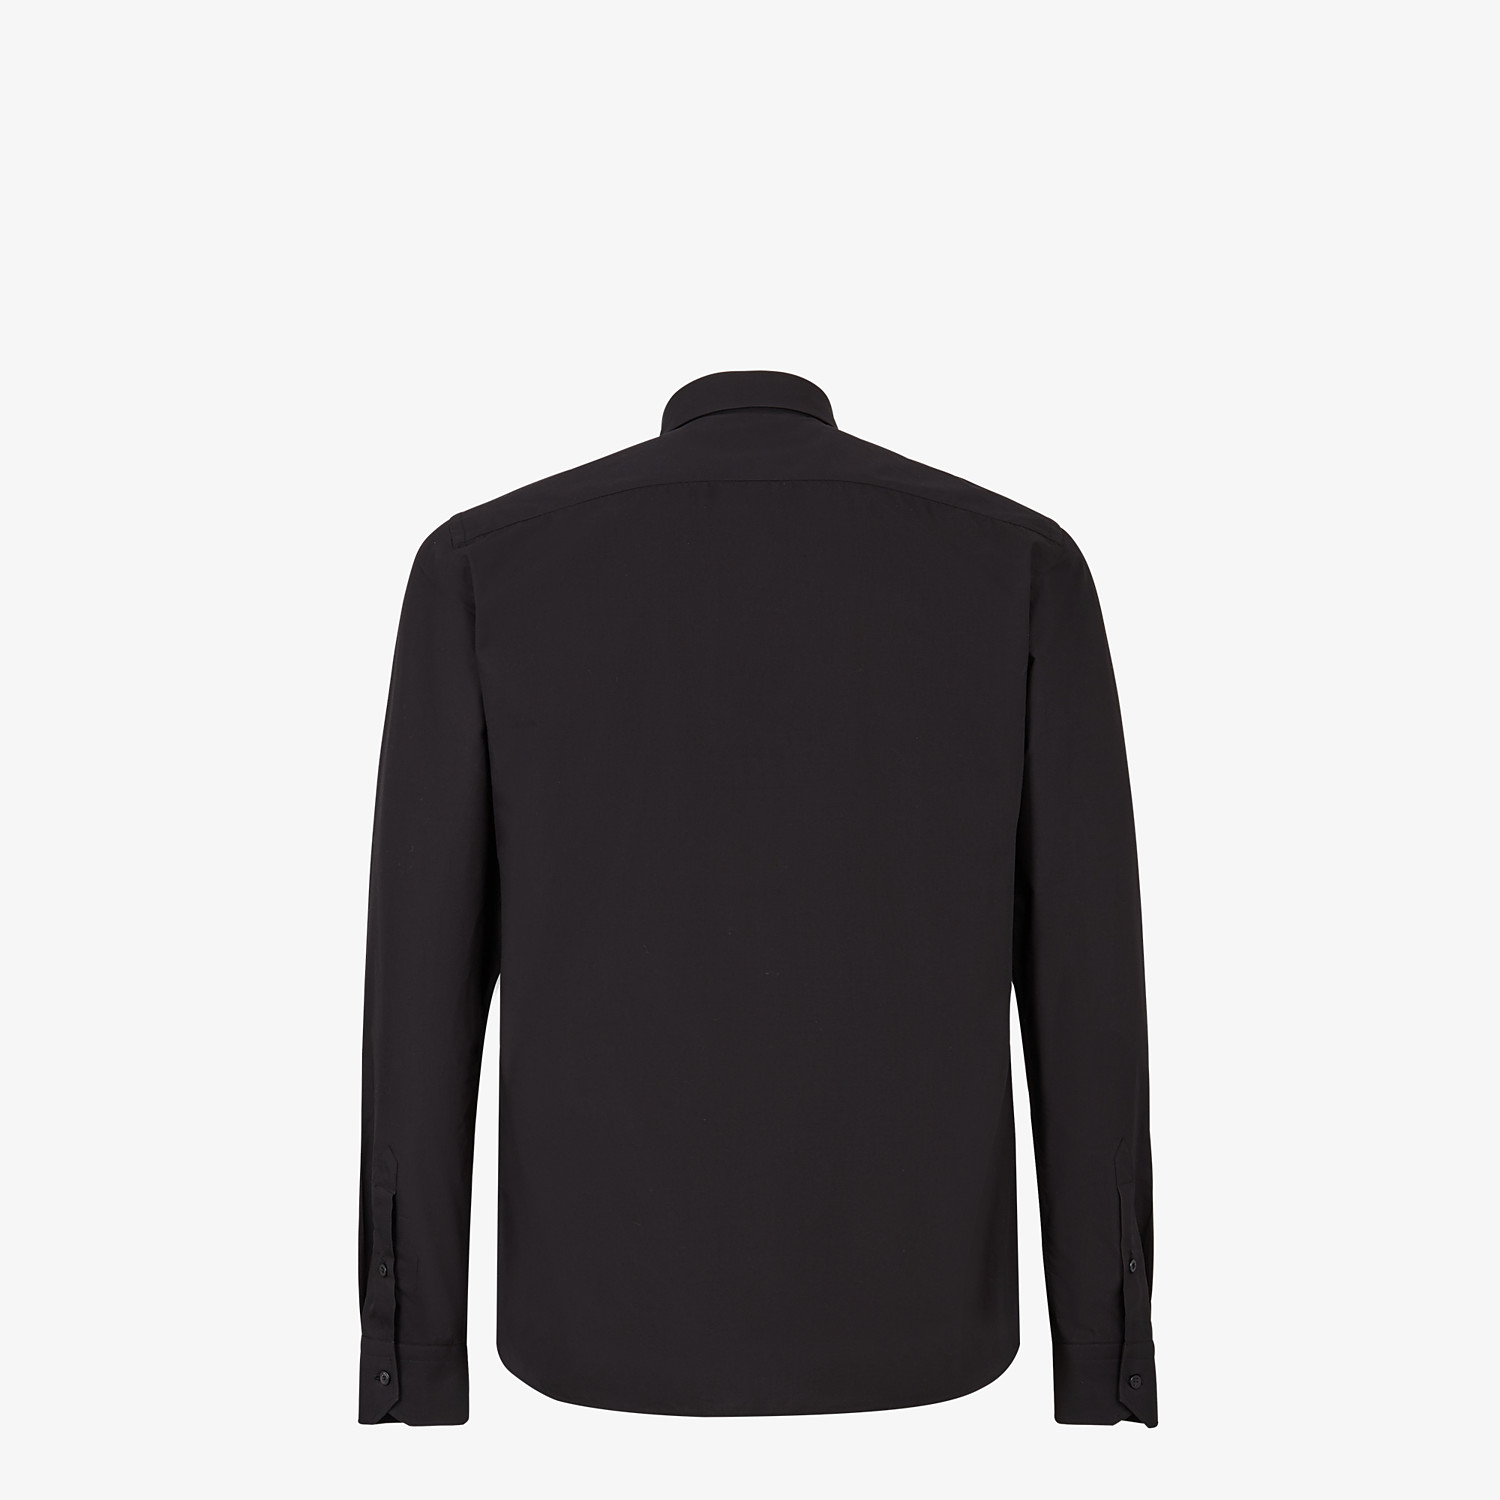 FENDI SHIRT - Black poplin shirt - view 2 detail